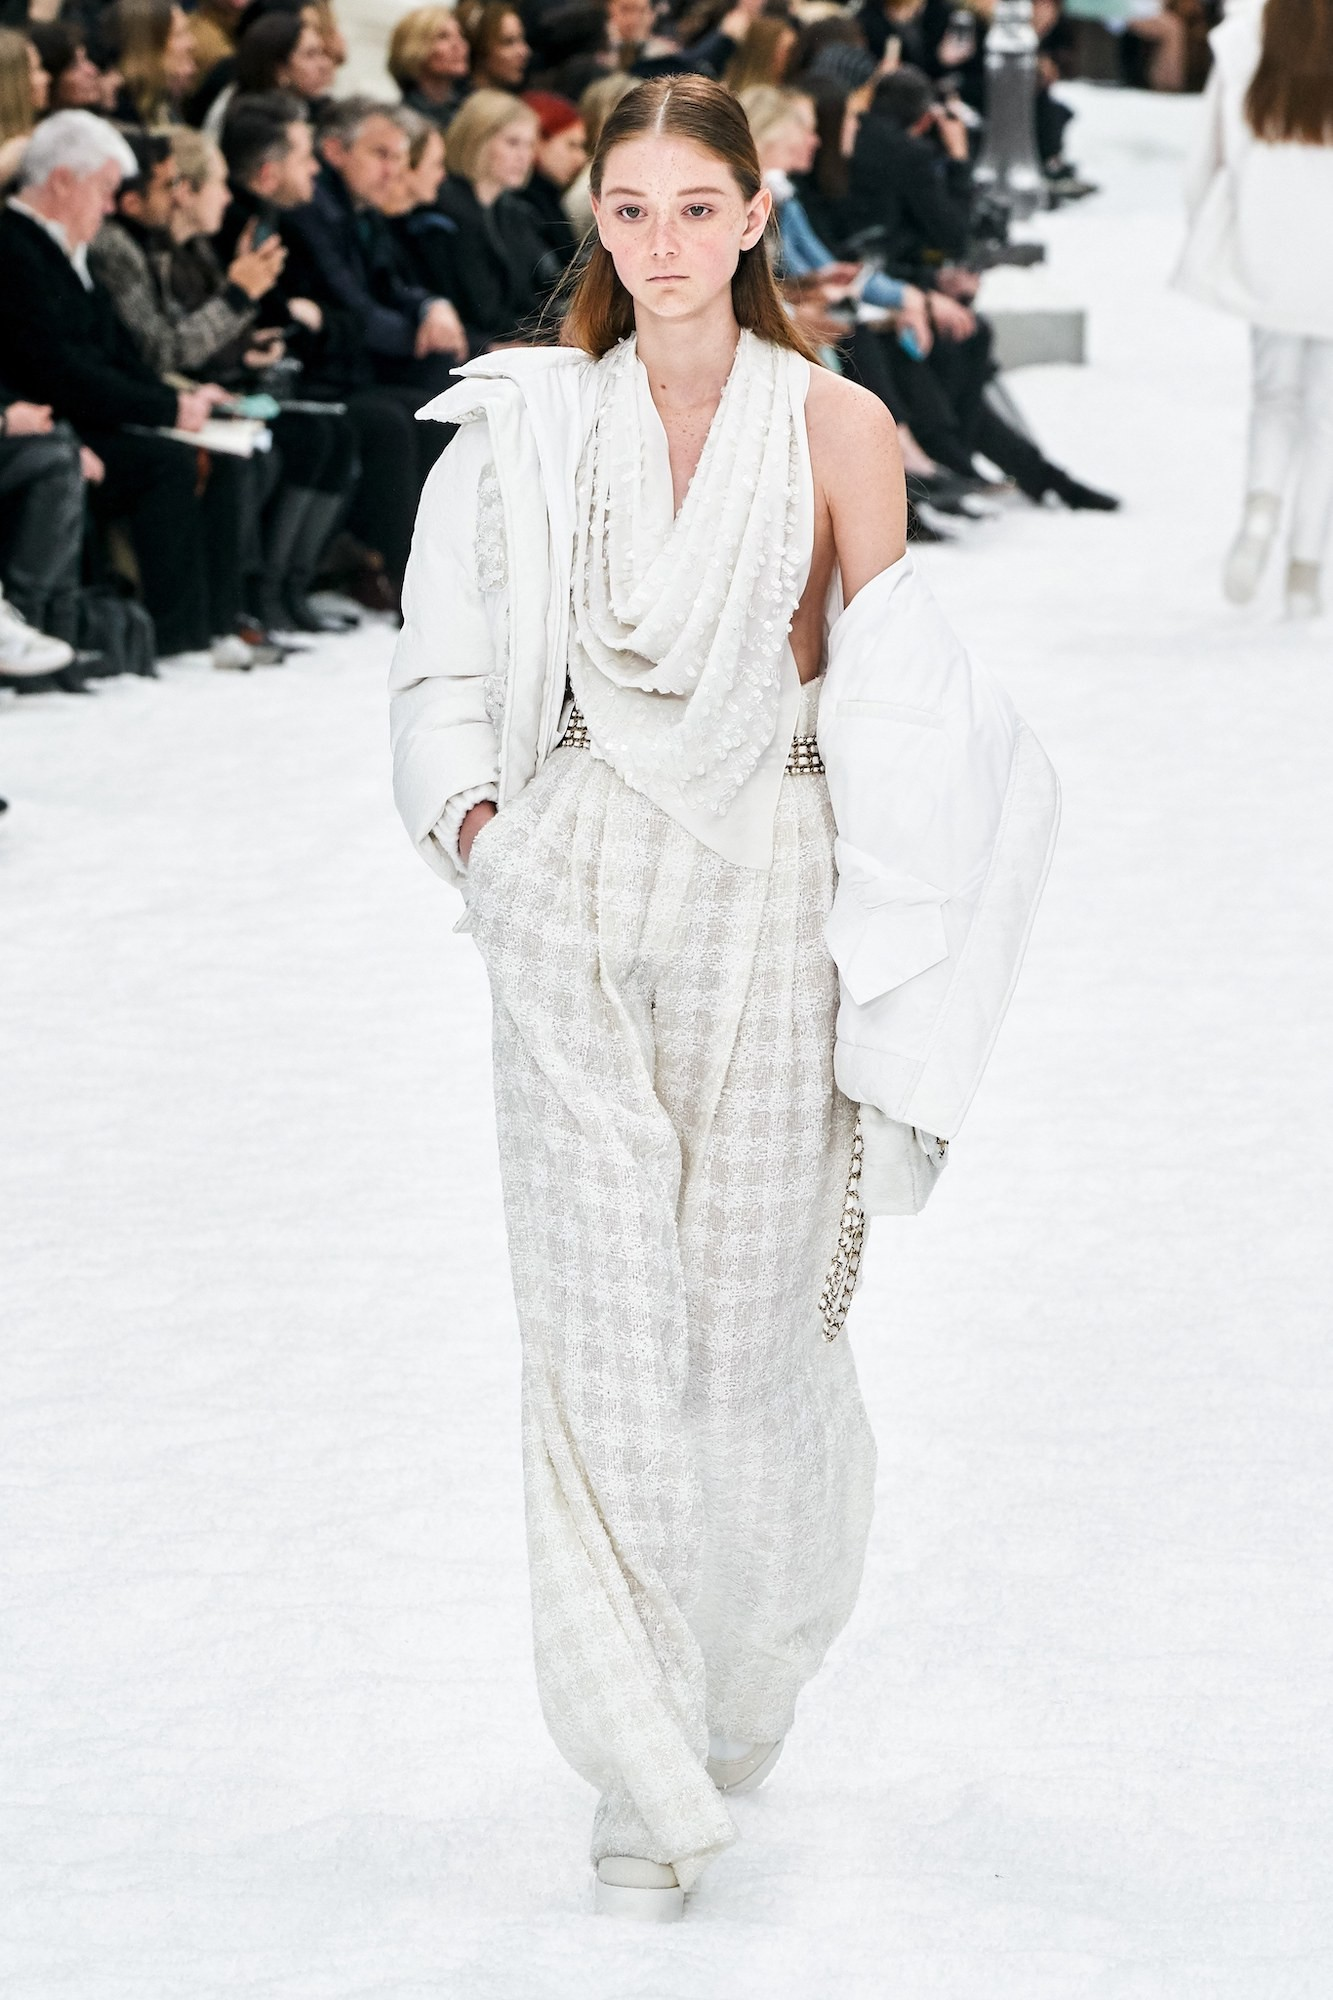 Chanel Pays Homage to Karl Lagerfeld at Paris FW